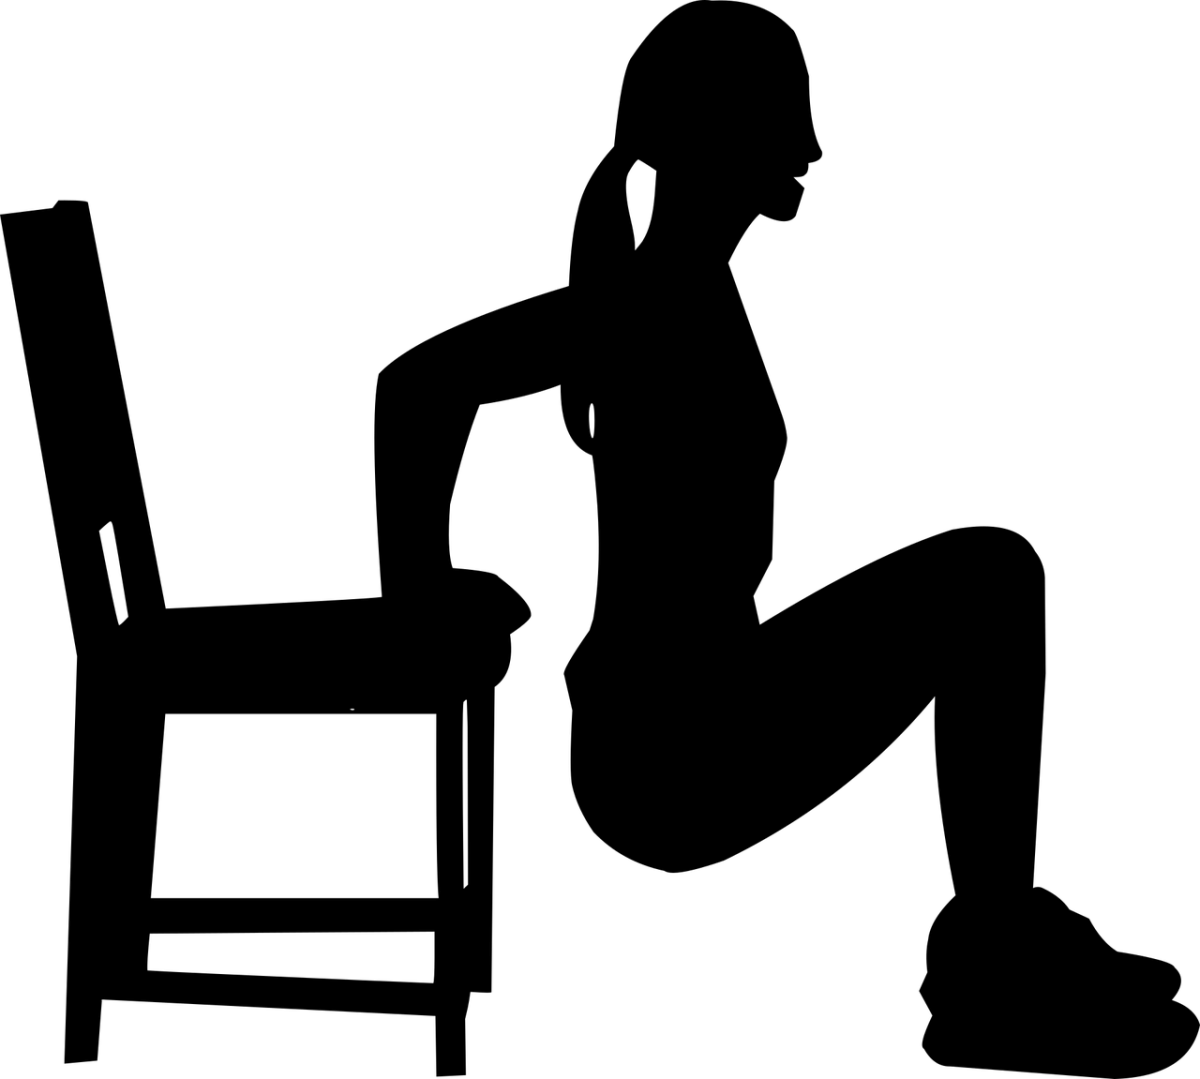 Aerobics exercise silhouette with chair